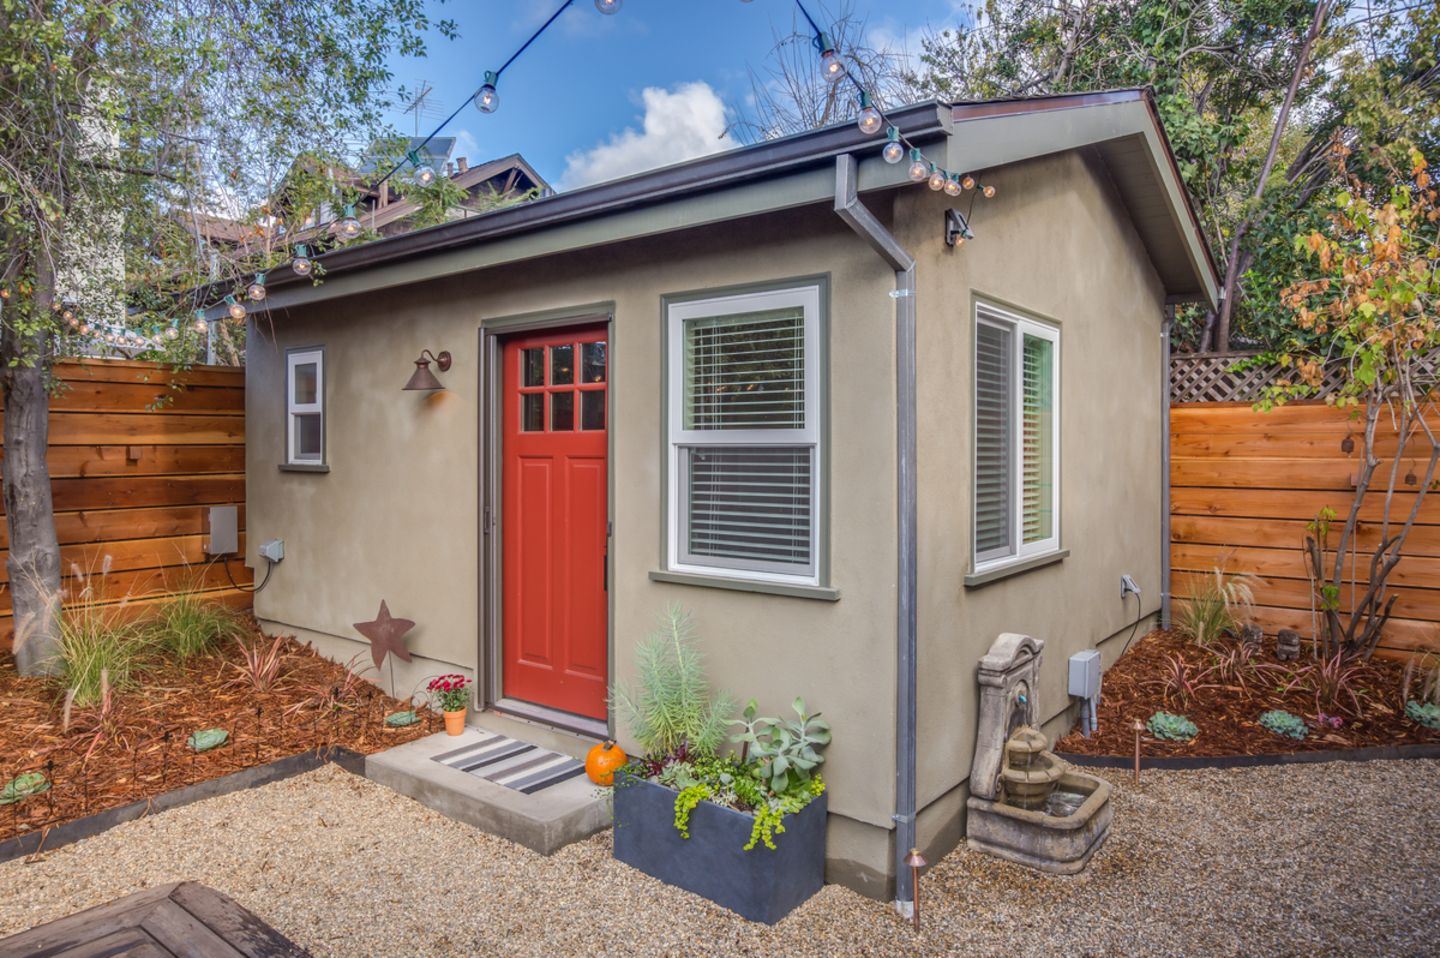 tiny backyard home office. Travis And Kelly\u0027s Backyard Casita - It Serves As A Guesthouse Office. Tiny Guest HouseGuest Home Office